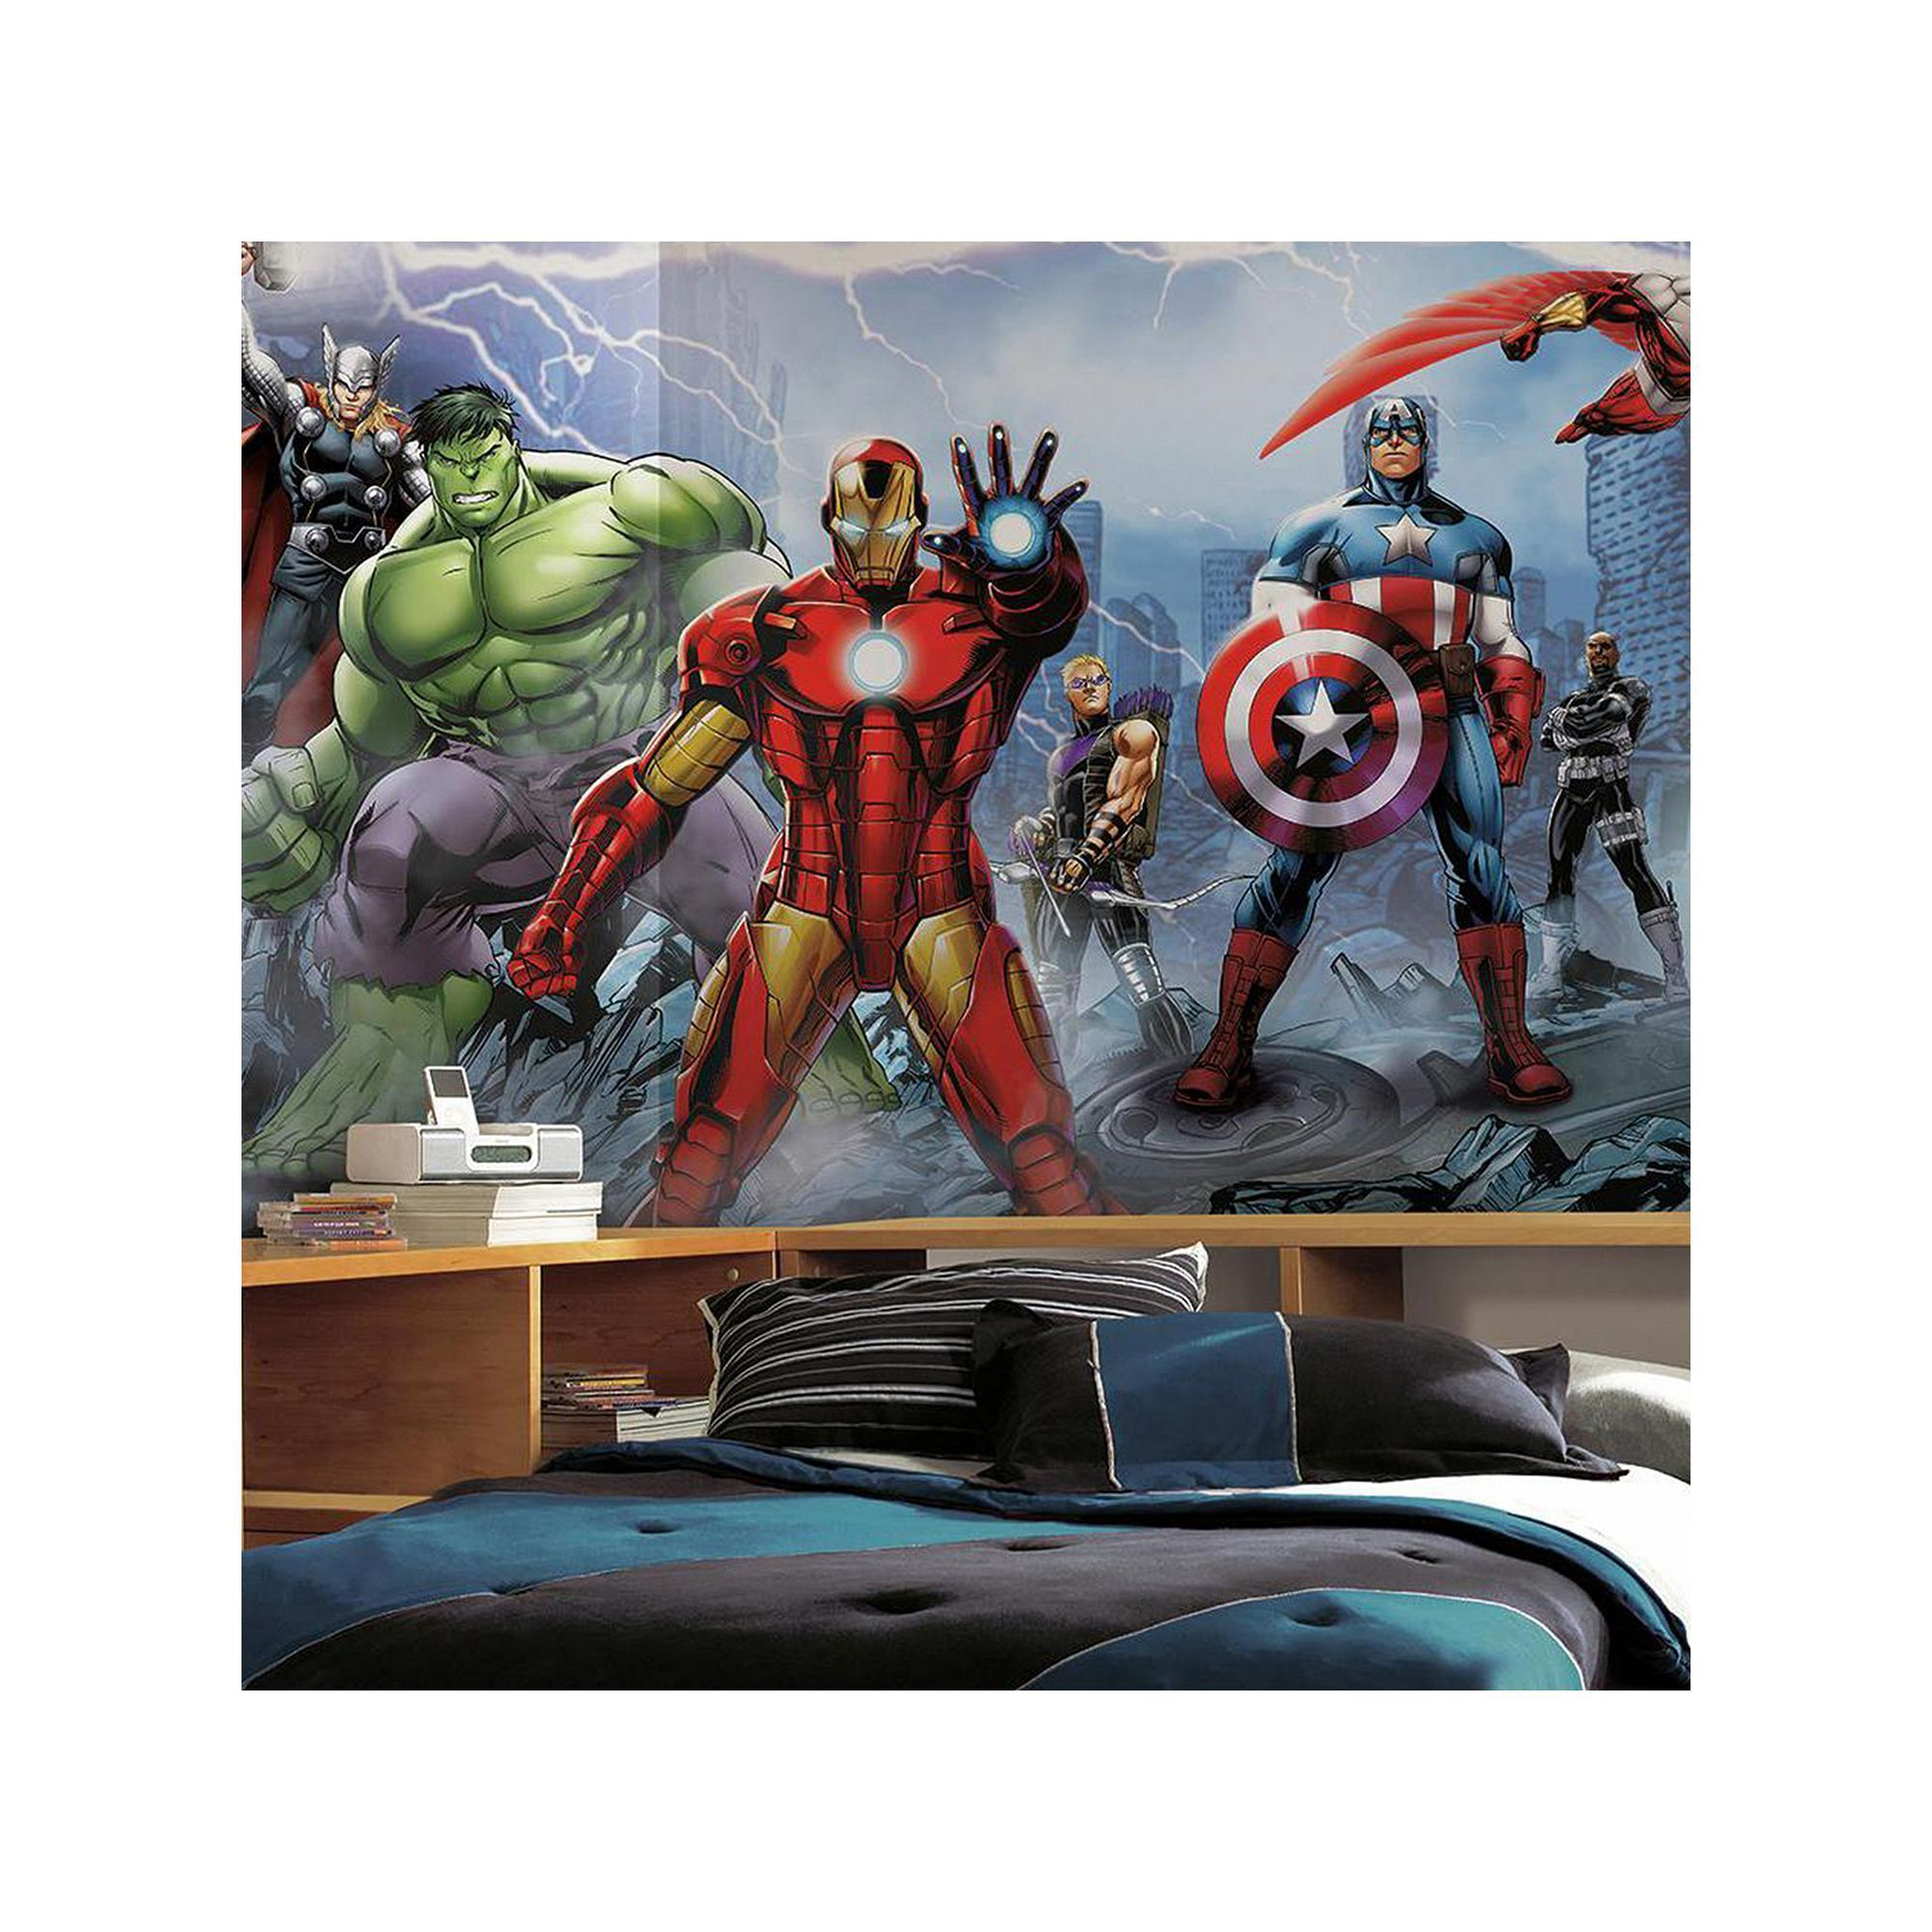 14e6cae0eec Marvel Avengers Assemble Removable Wallpaper Mural | Products ...